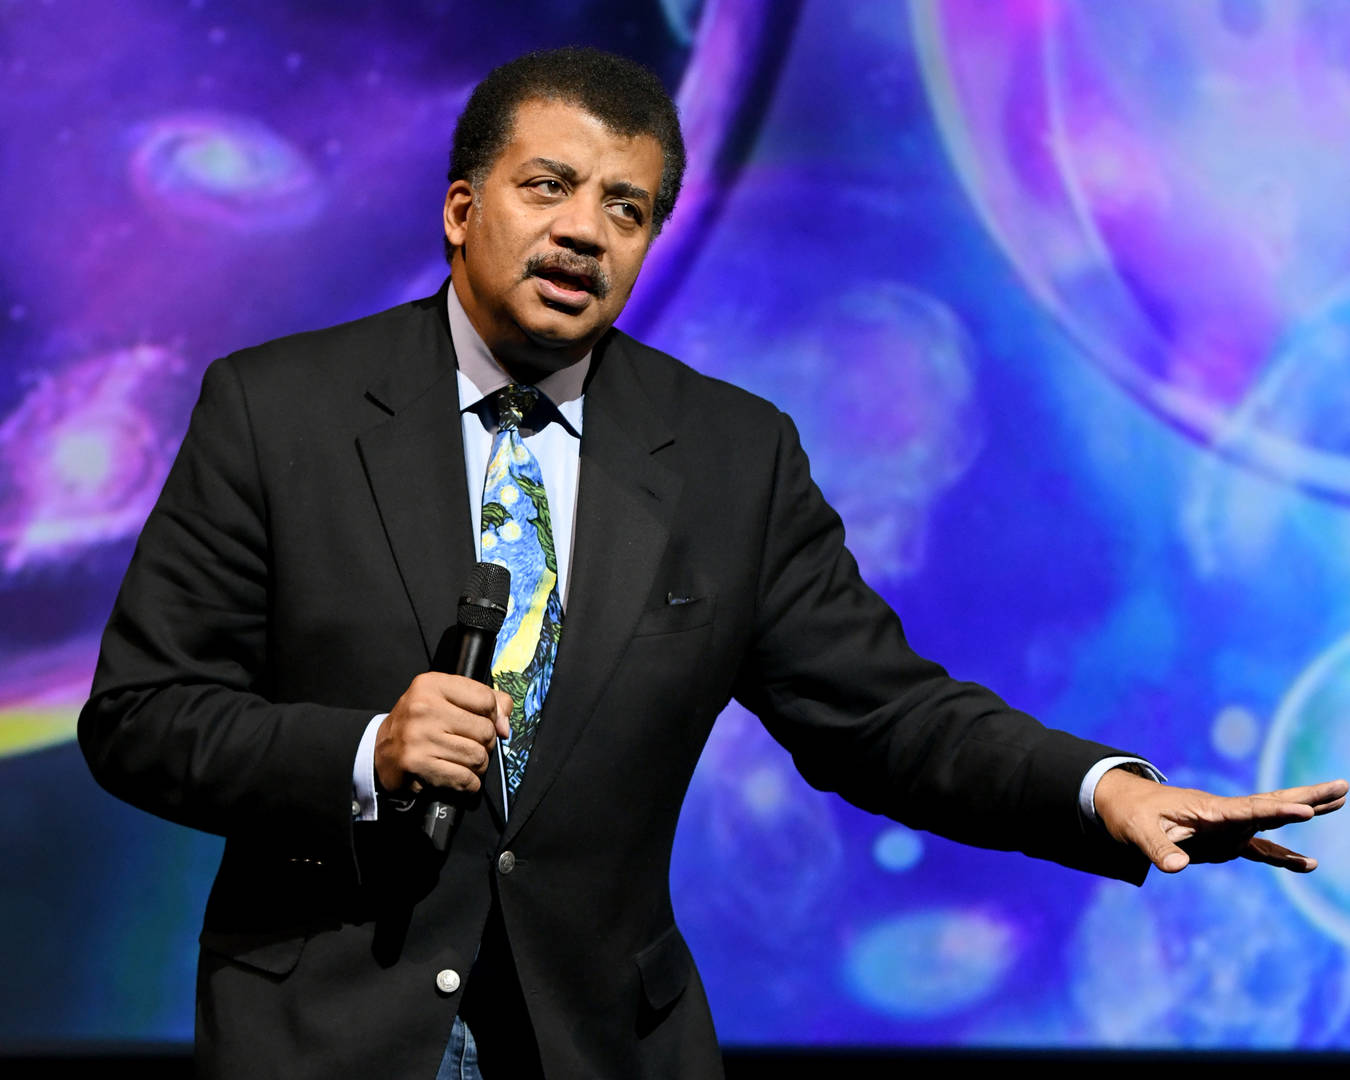 Neil deGrasse Tyson Says Asteroid Could Hit U.S. Day Before Election